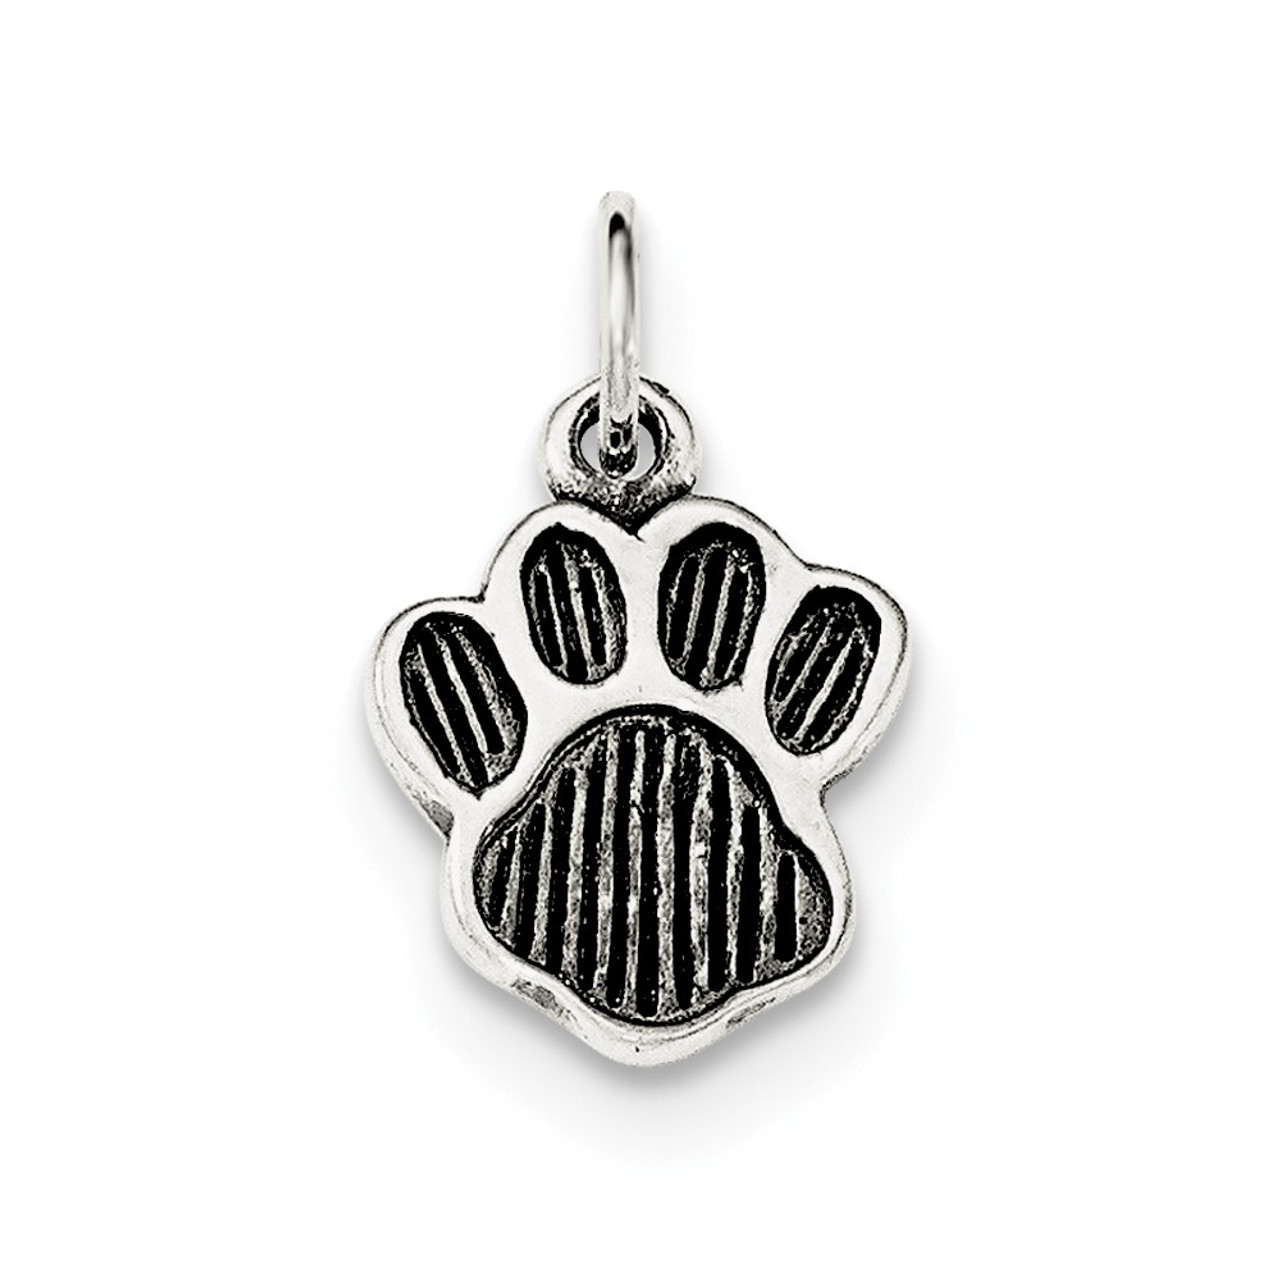 .925 Sterling Silver Polished /& Textured Mini Dog Paw Print Charm